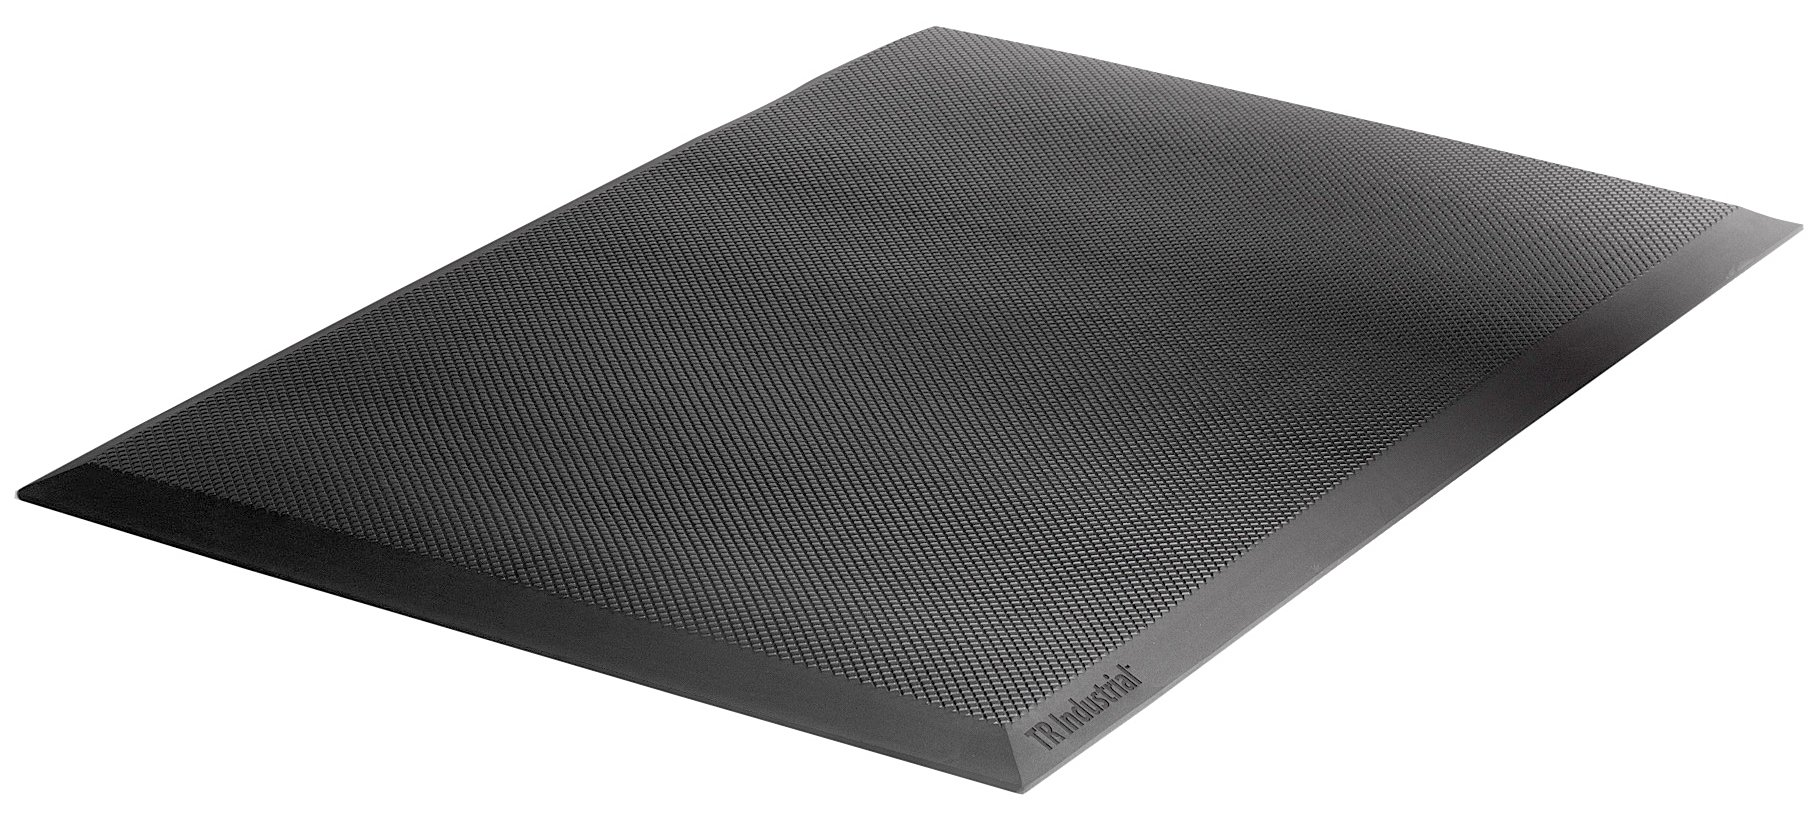 TR Industrial Anti-Fatigue Mat For Home, Office, and Kitchen Standing Relief, 23.25 inch x 34 inch x 3/4 inch, Black